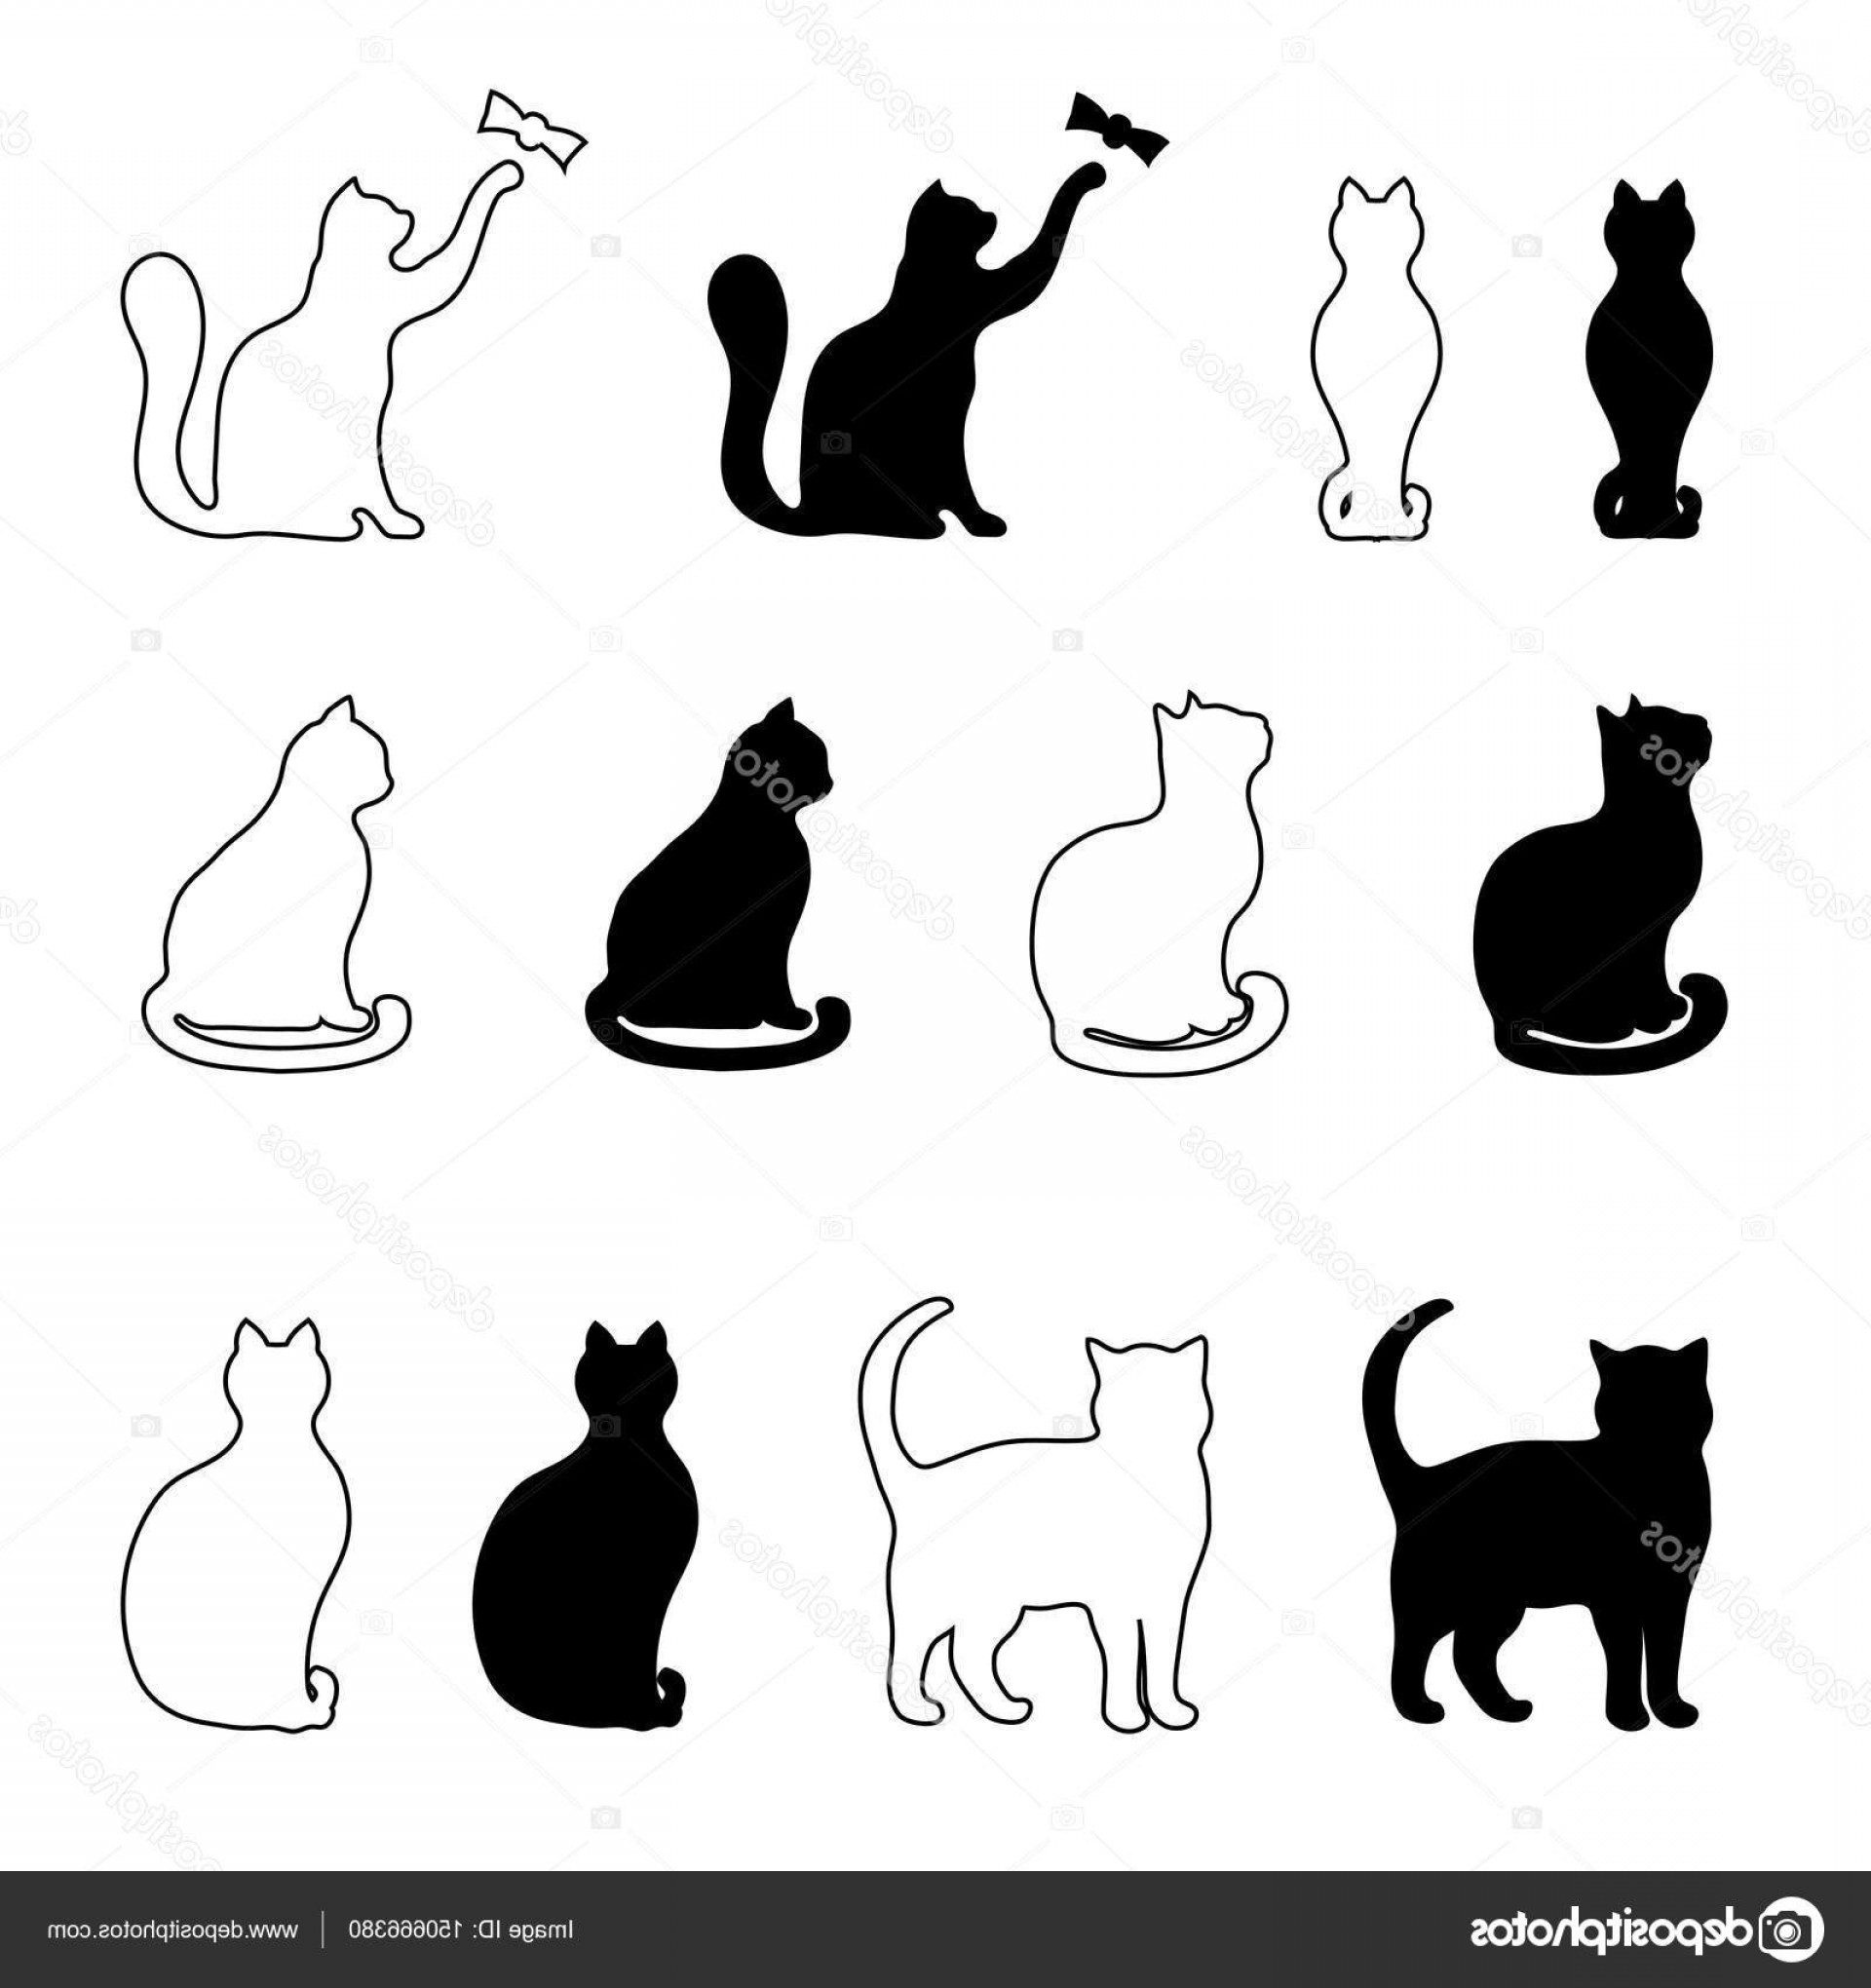 Malee Cat Head Silhouette Vector: Stock Illustration Silhouette Of A Black Cat